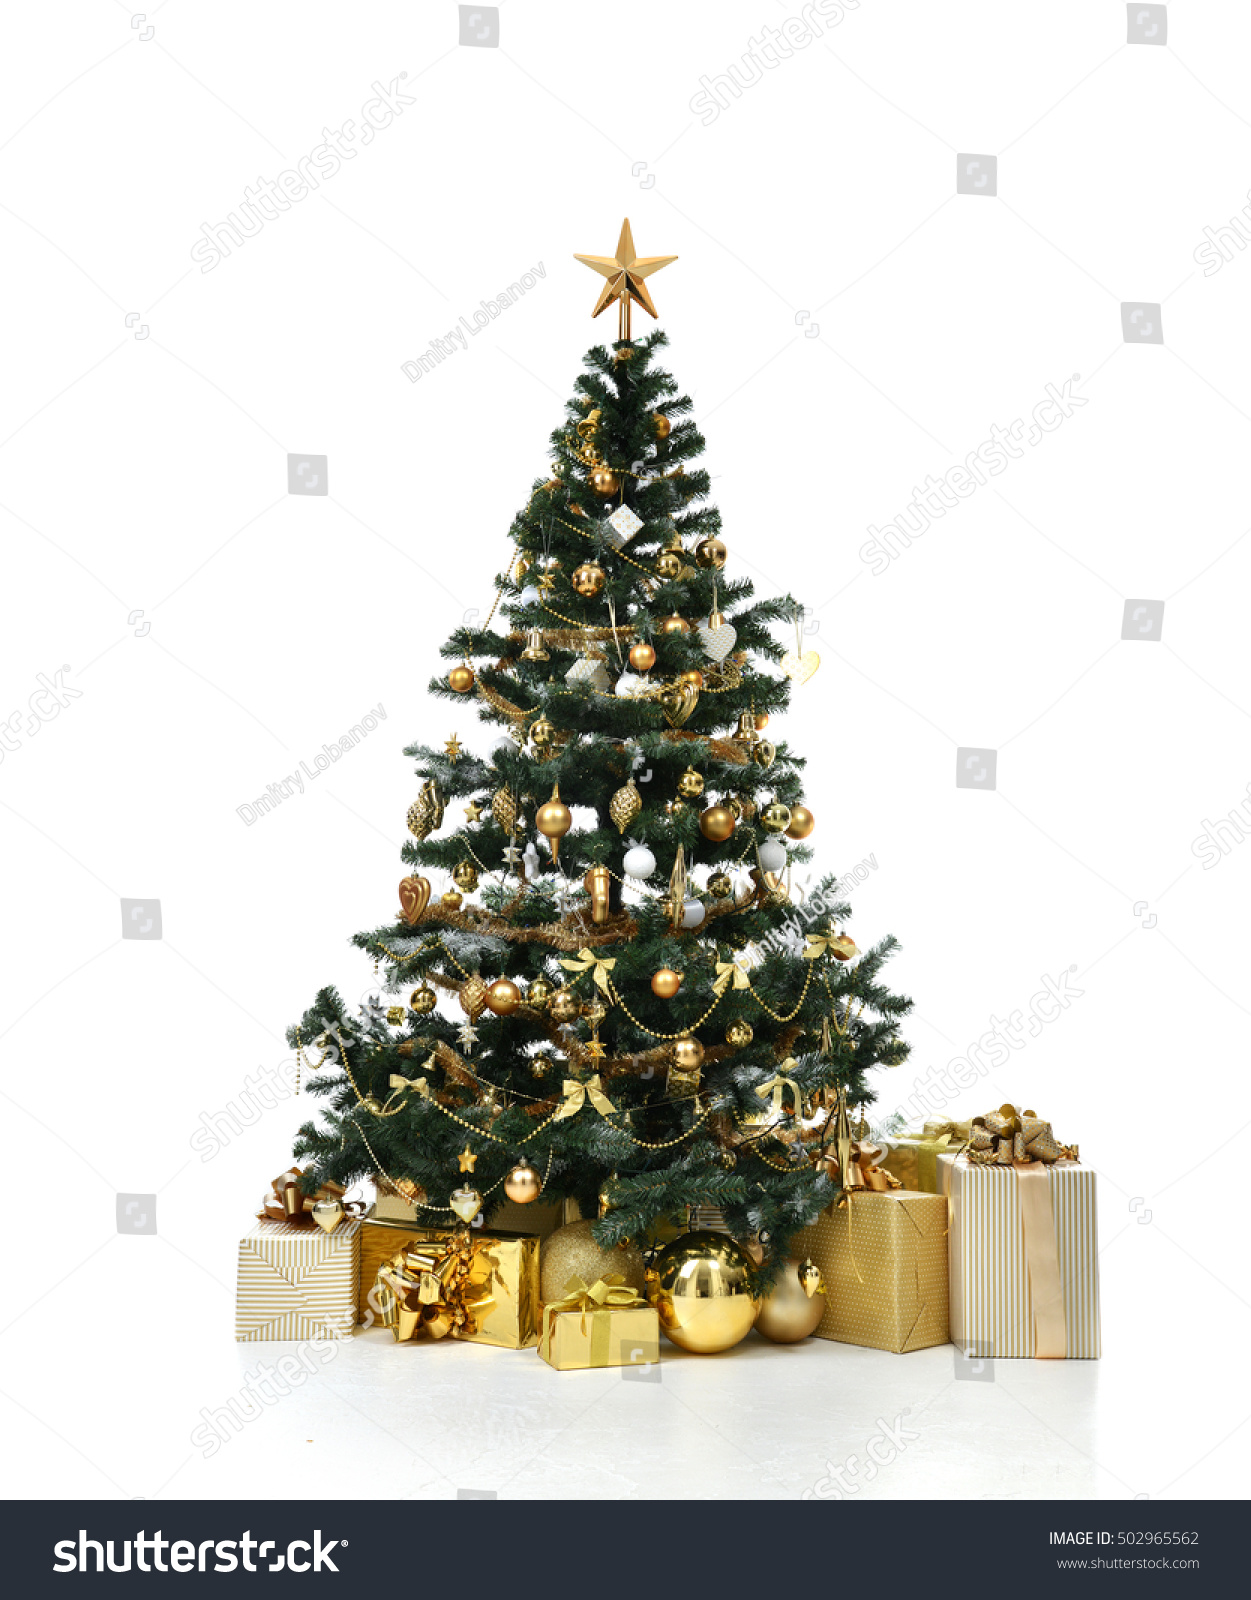 Decorated gold Christmas tree with golder patchwork ornament artificial star hearts presents for new year isolated on white background #502965562